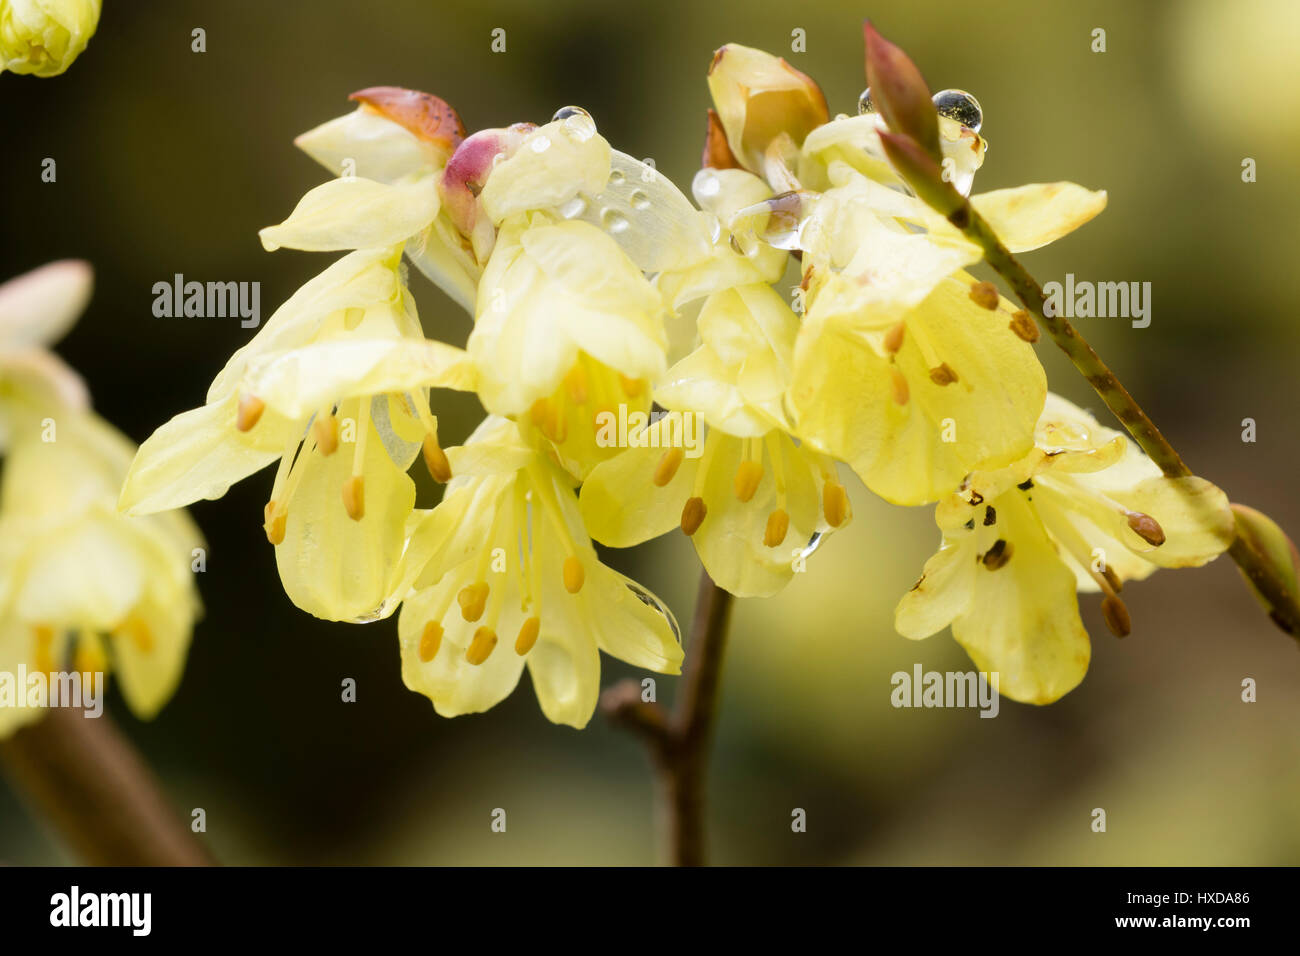 Pale yellow early spring flowers of the winter hazel, Corylopsis pauciflora - Stock Image